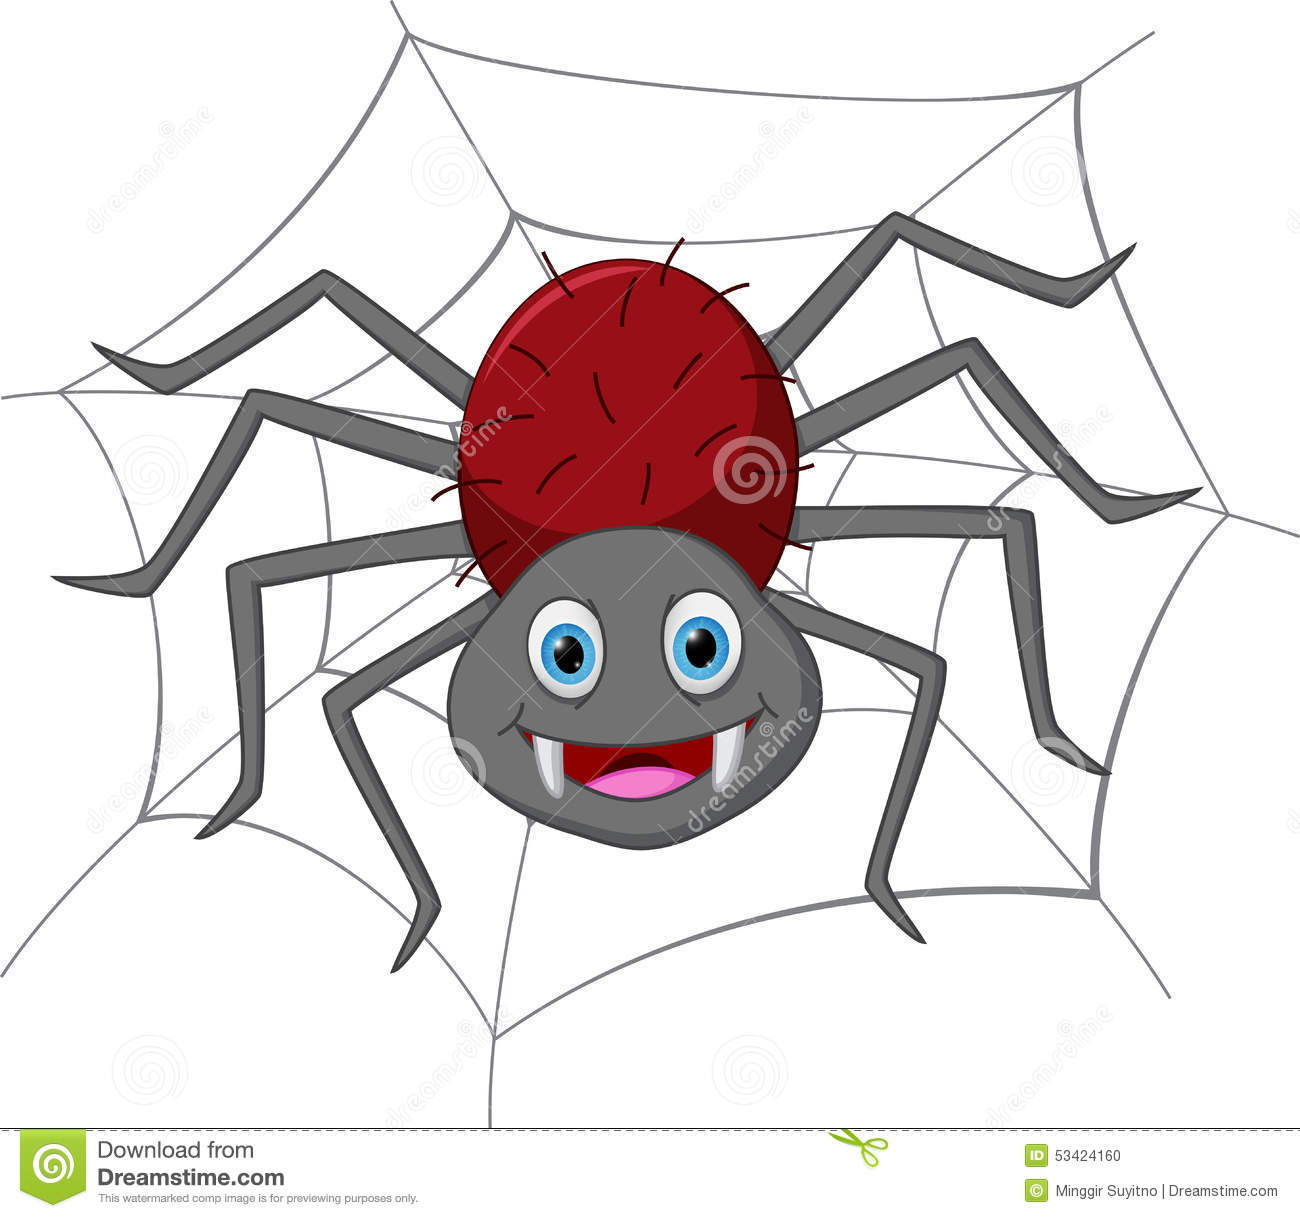 Funny Spider Cartoon Stock Vector - Image: 53424160